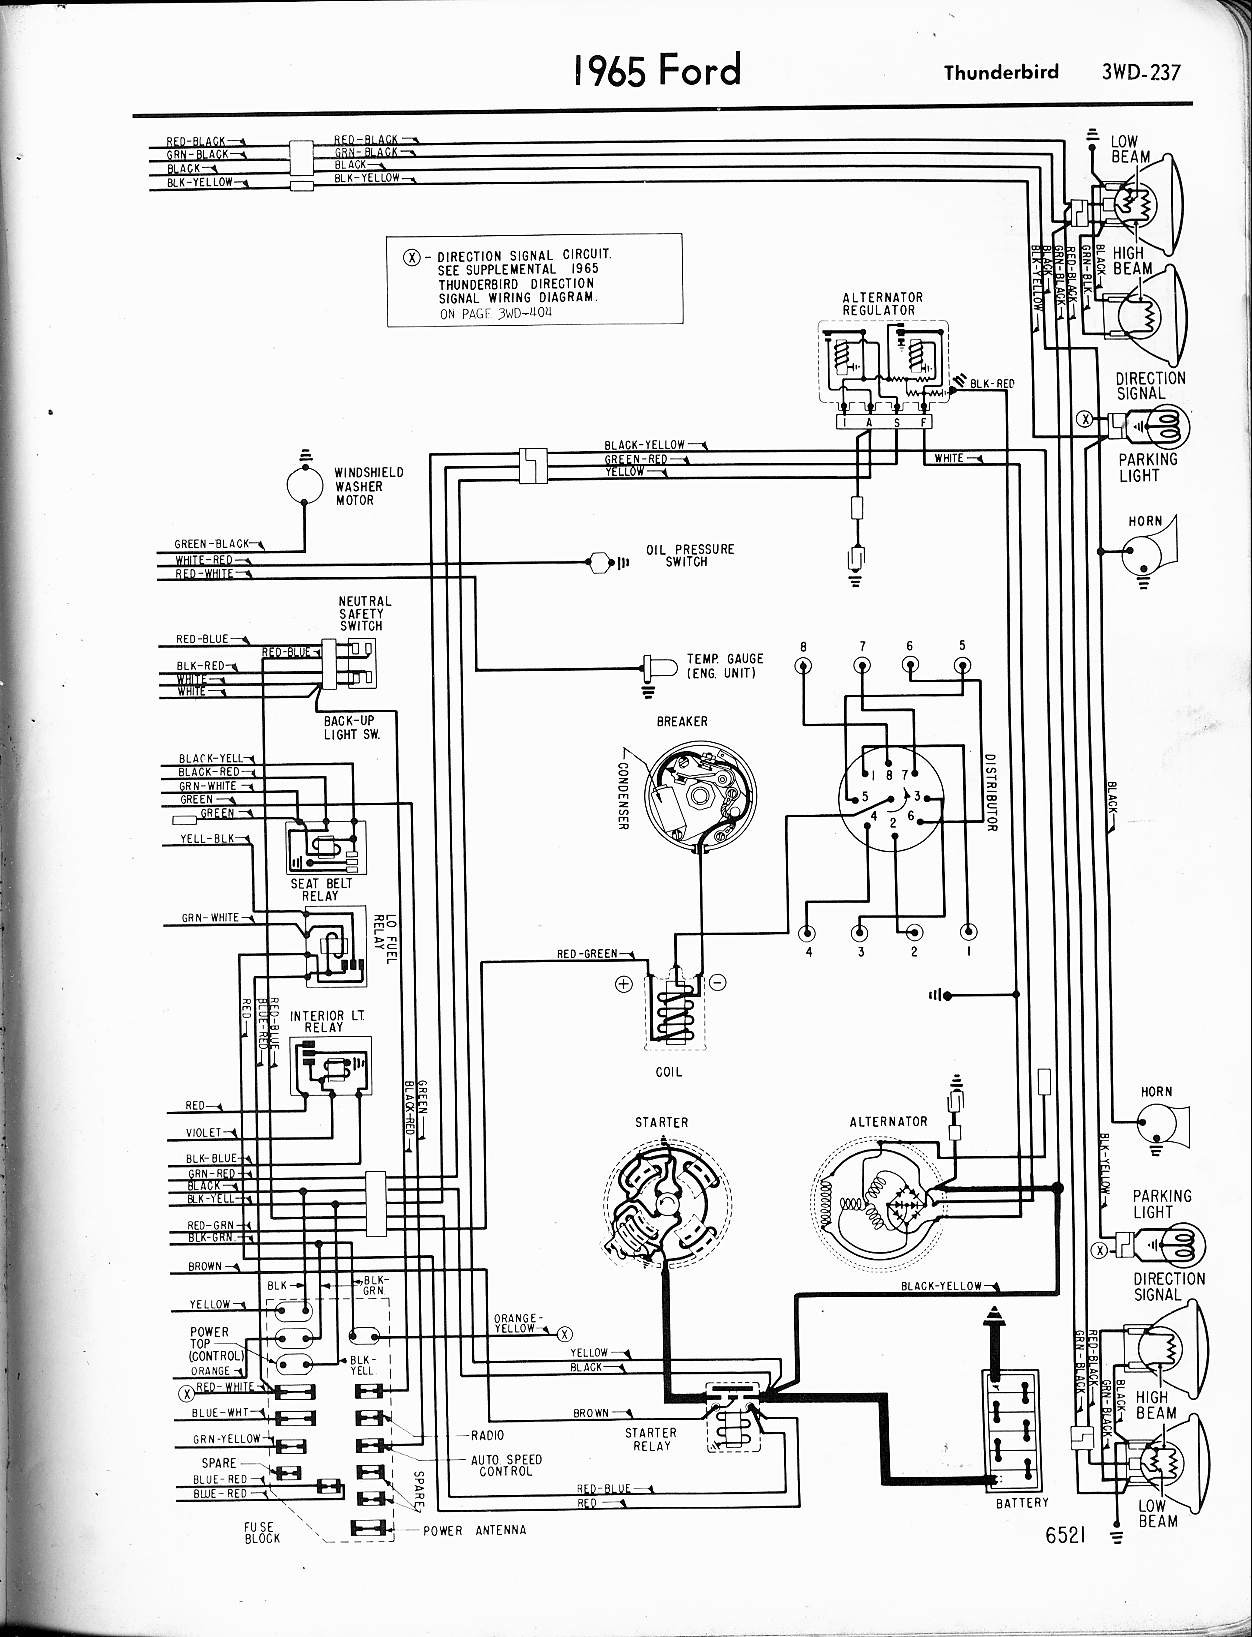 1962 thunderbird fuse diagram introduction to electrical wiring rh jillkamil com 1962 Ford Thunderbird Wiring Diagram 1961 thunderbird wiring diagram